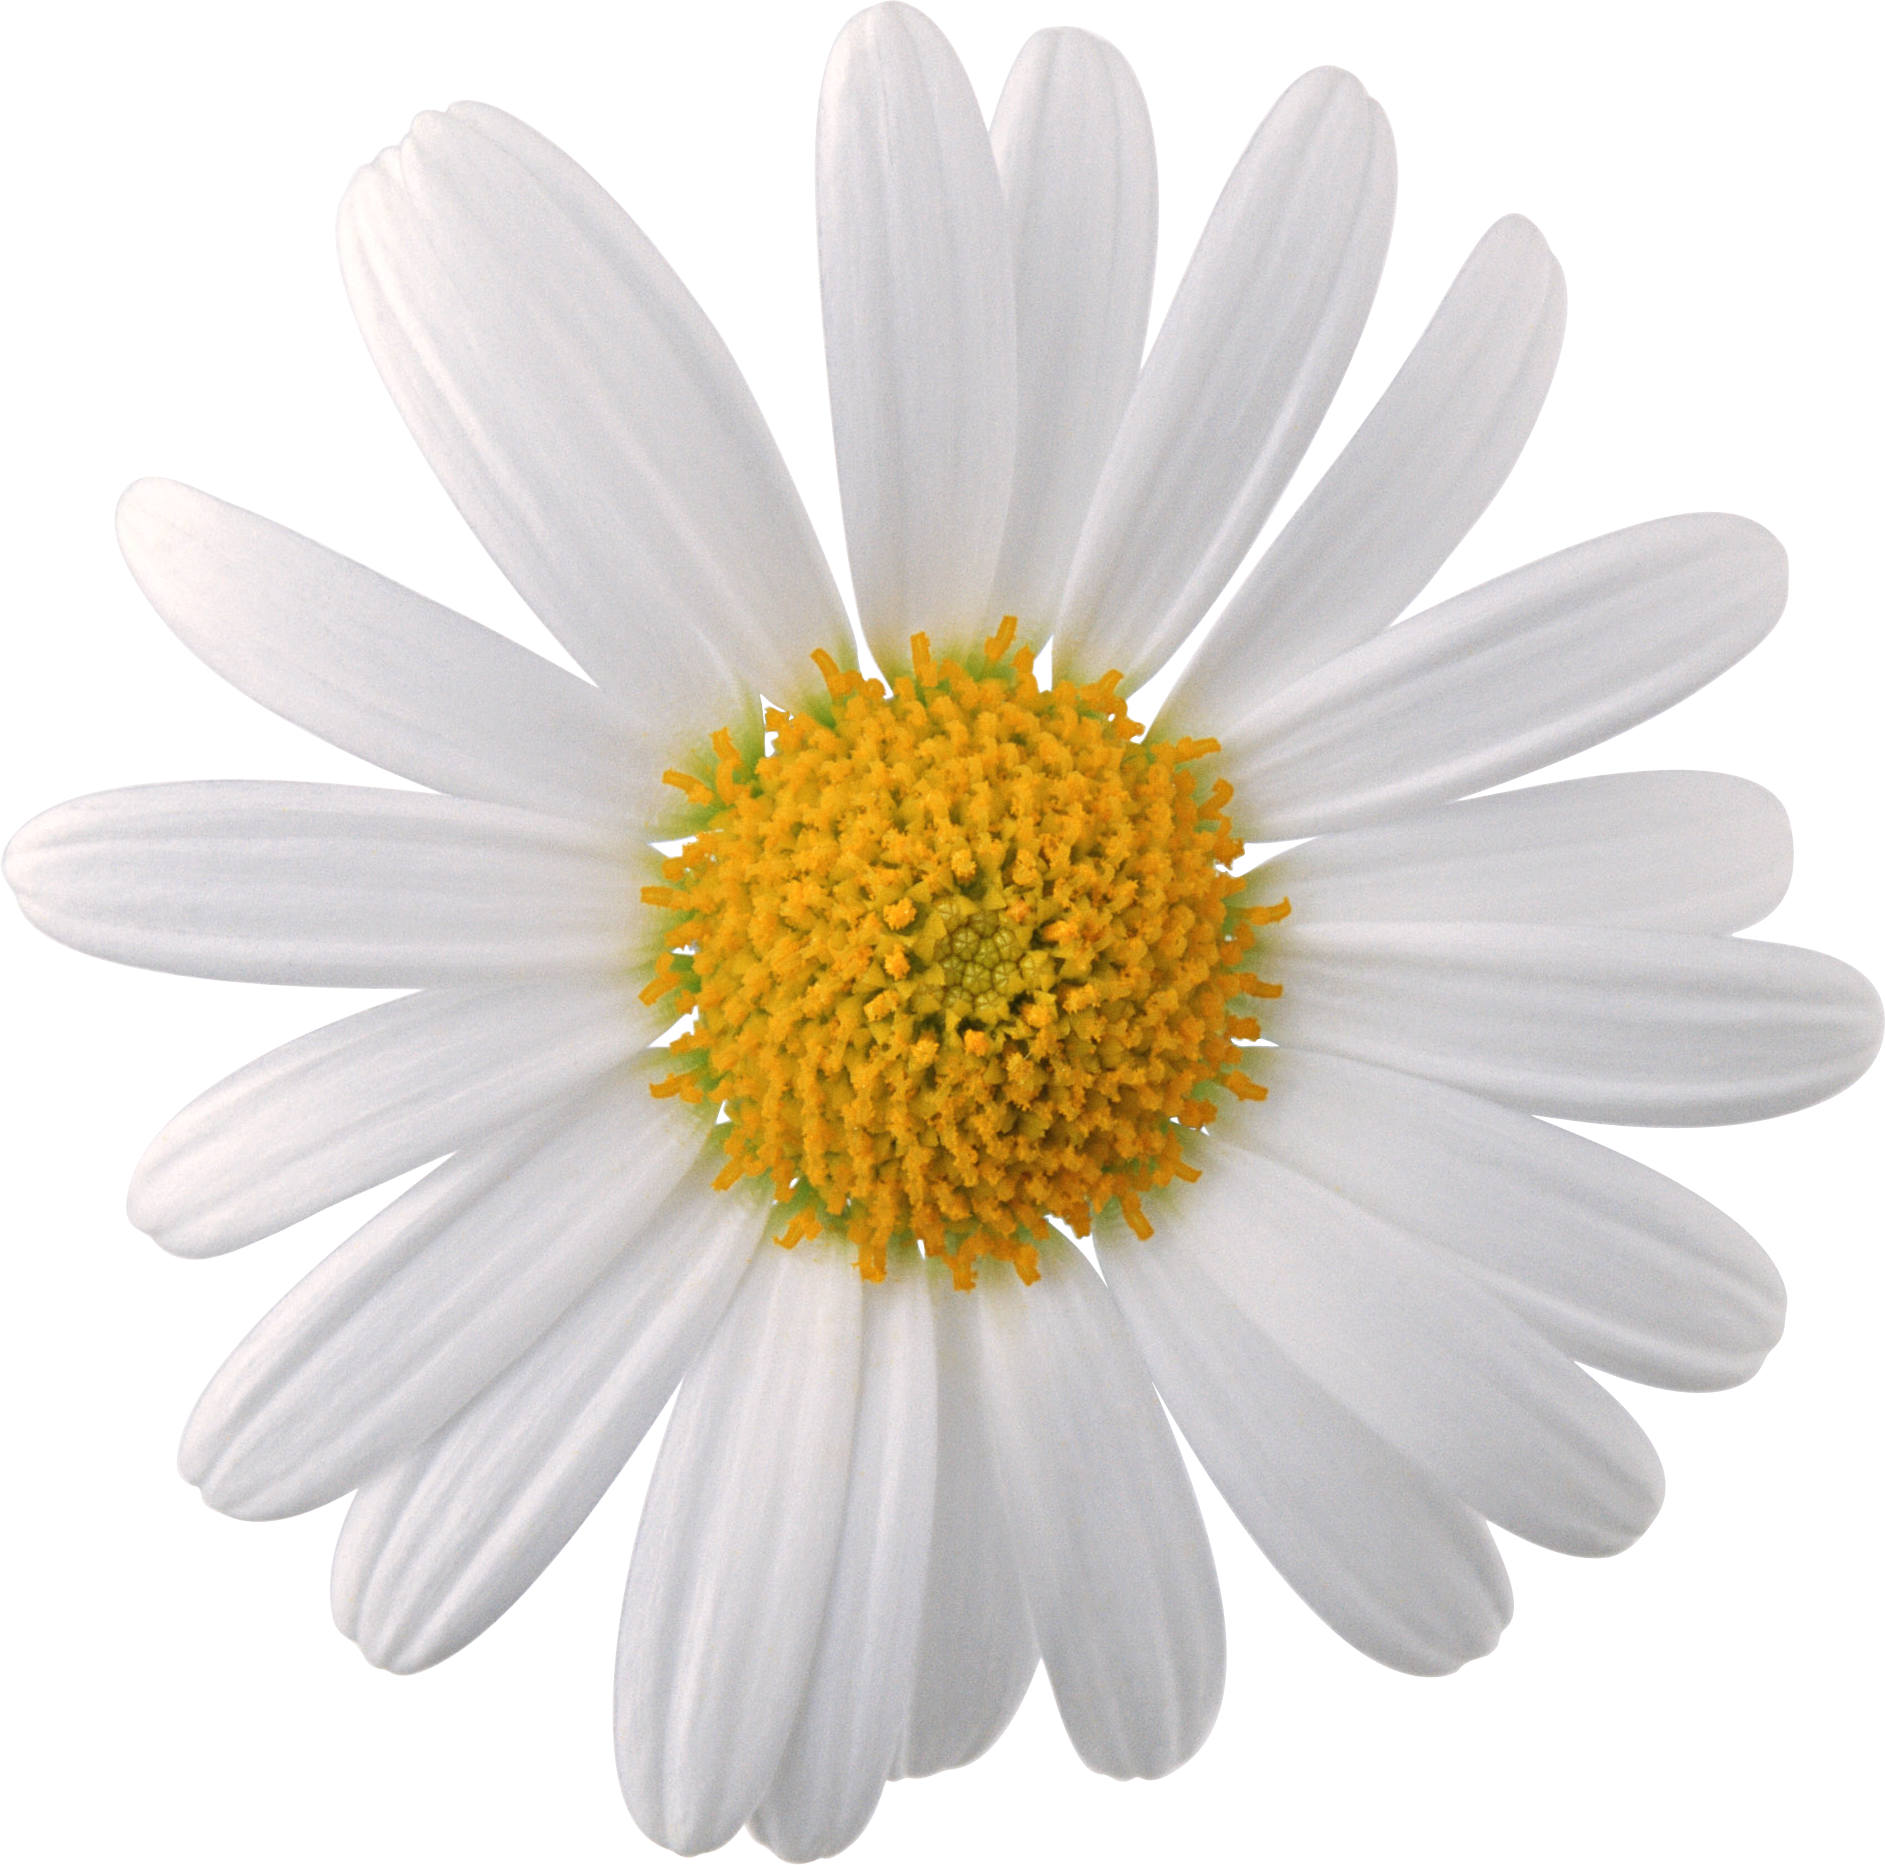 chamomile flowers daisy white and yellow